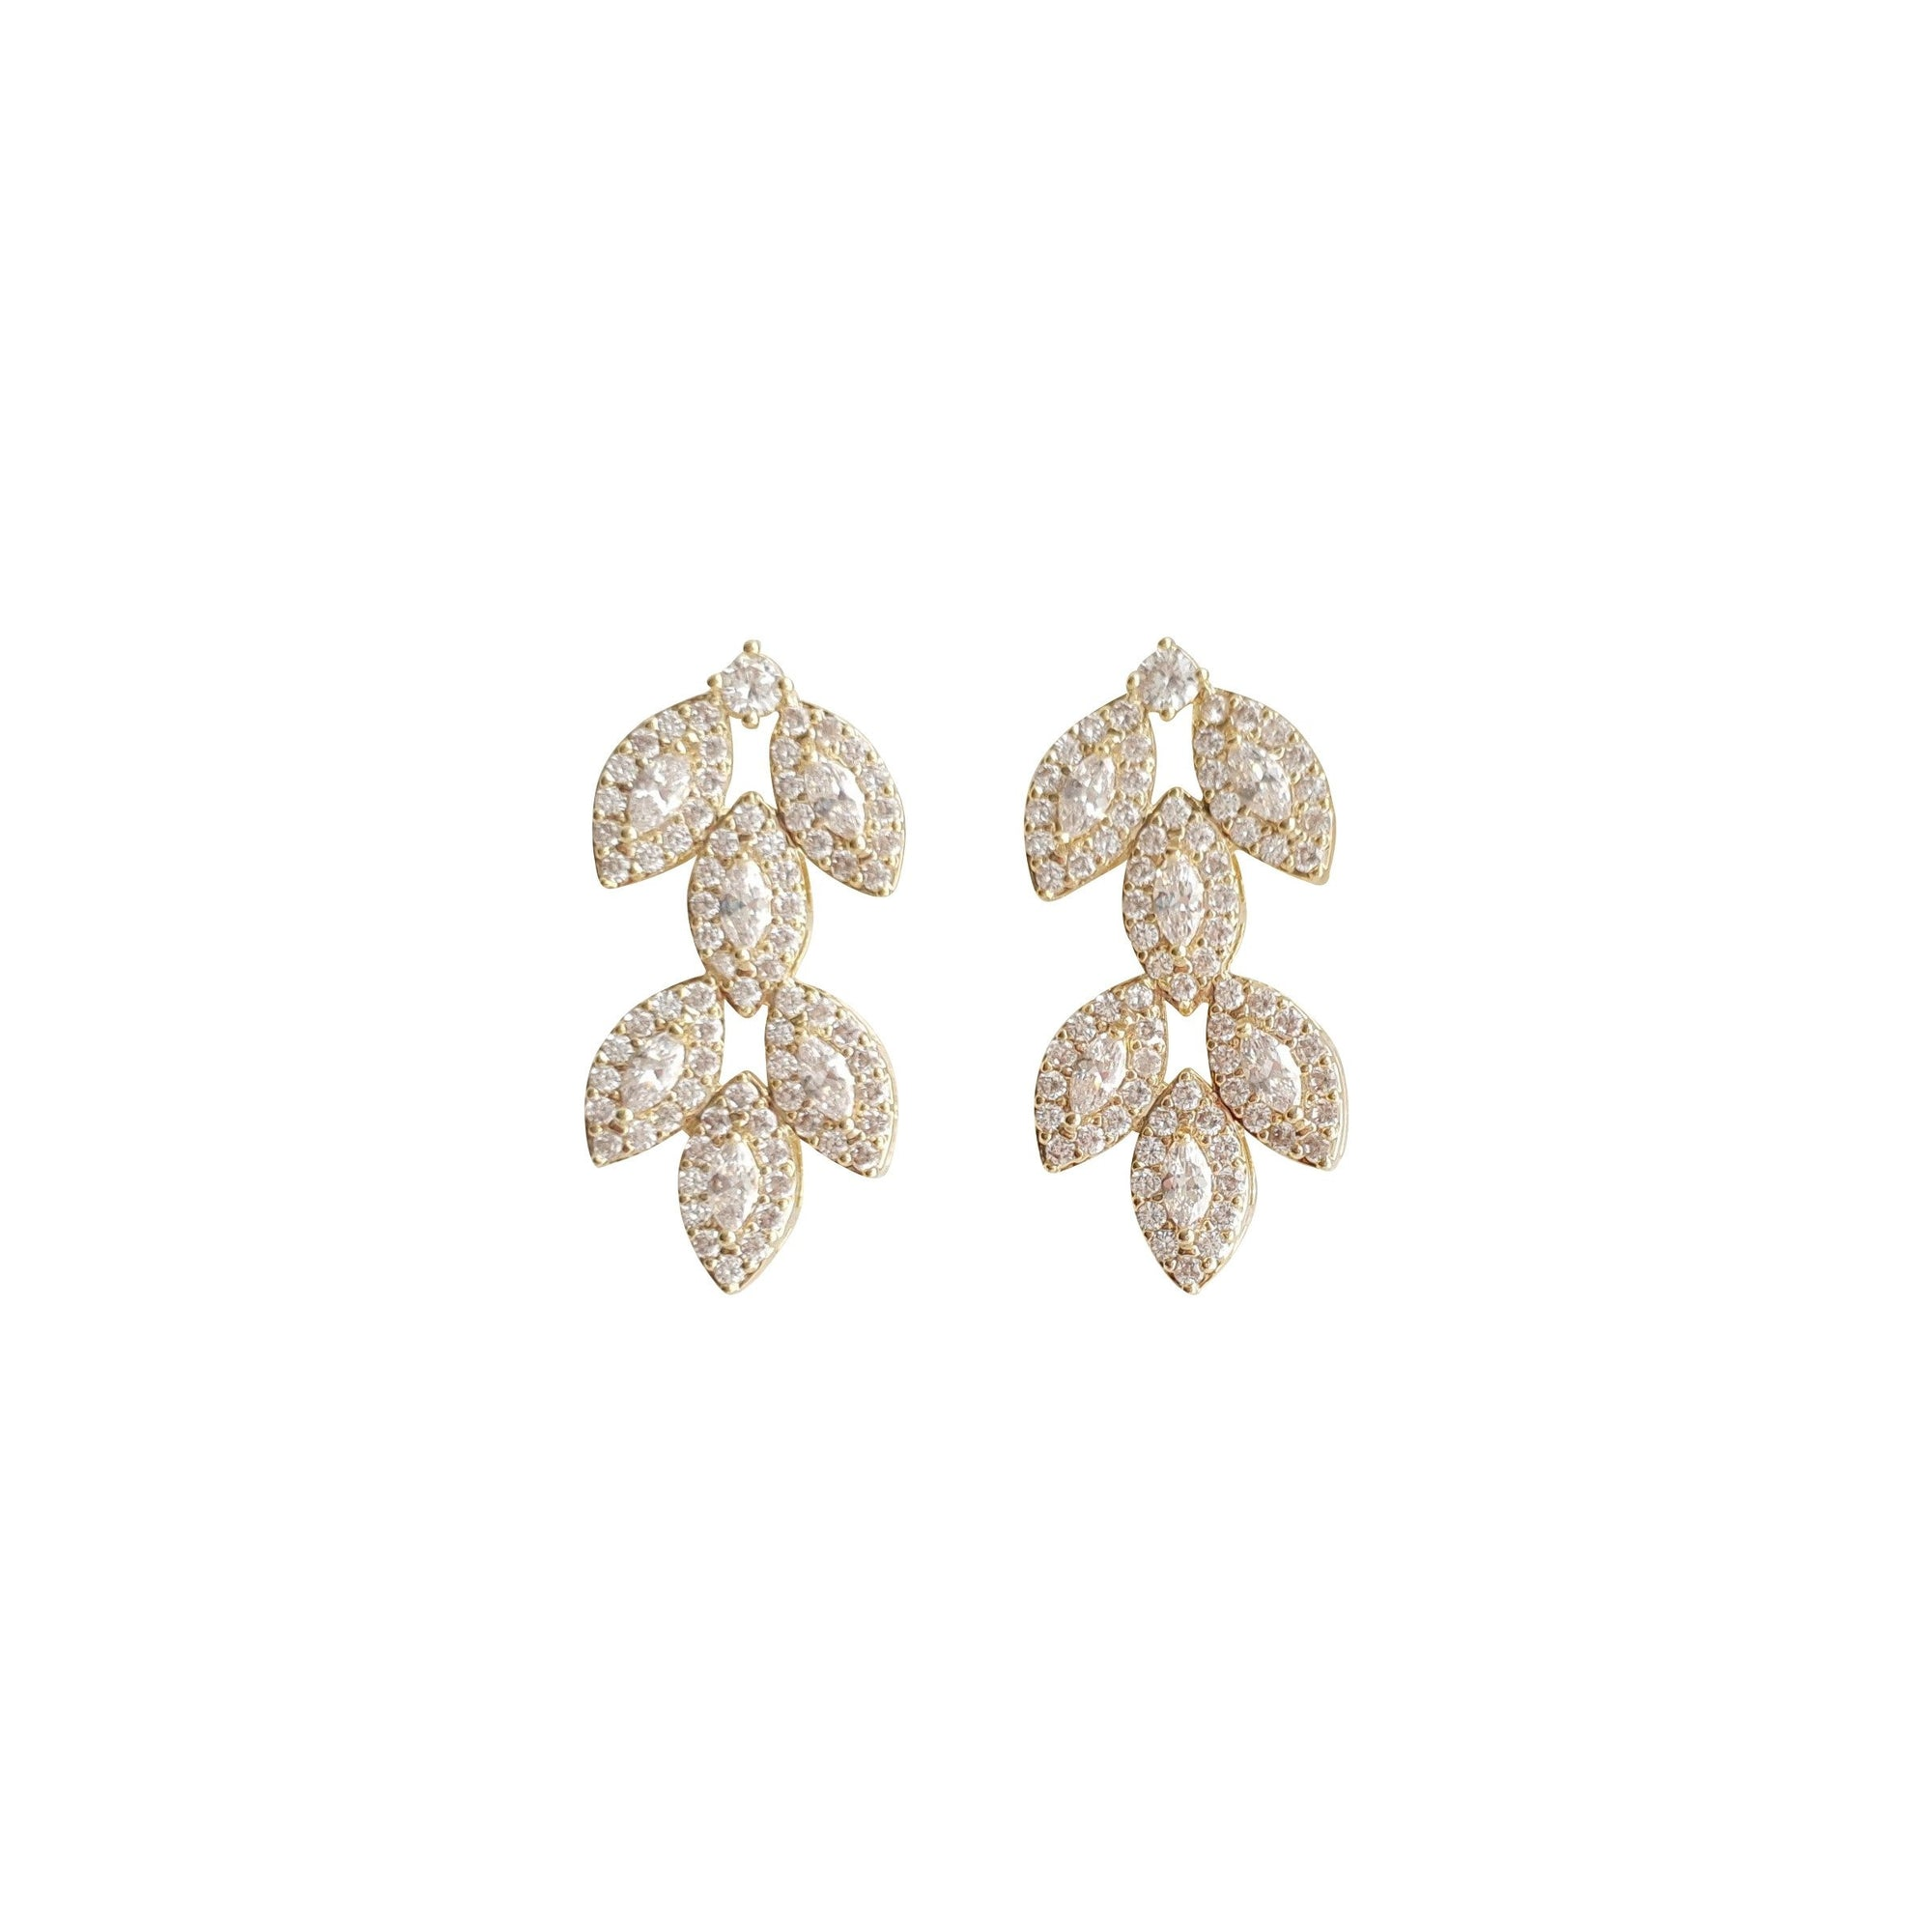 Cubic Zirconia Gold Leaf Stud Earrings- Abby